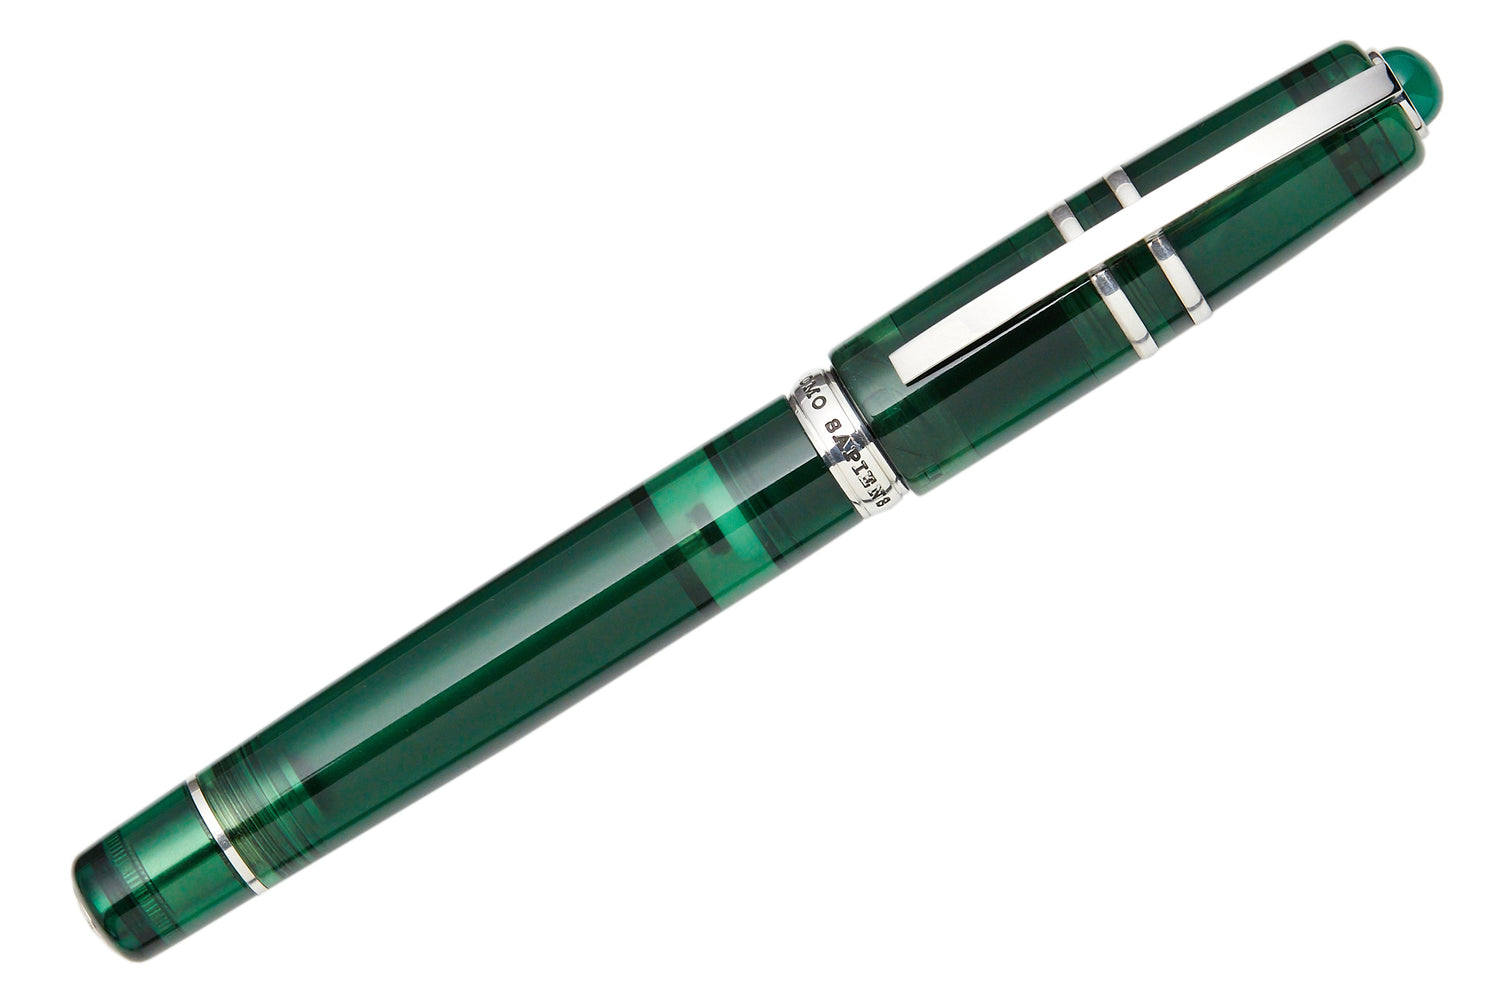 Visconti Homo Sapiens Demo Stones Fountain Pen - Emerald